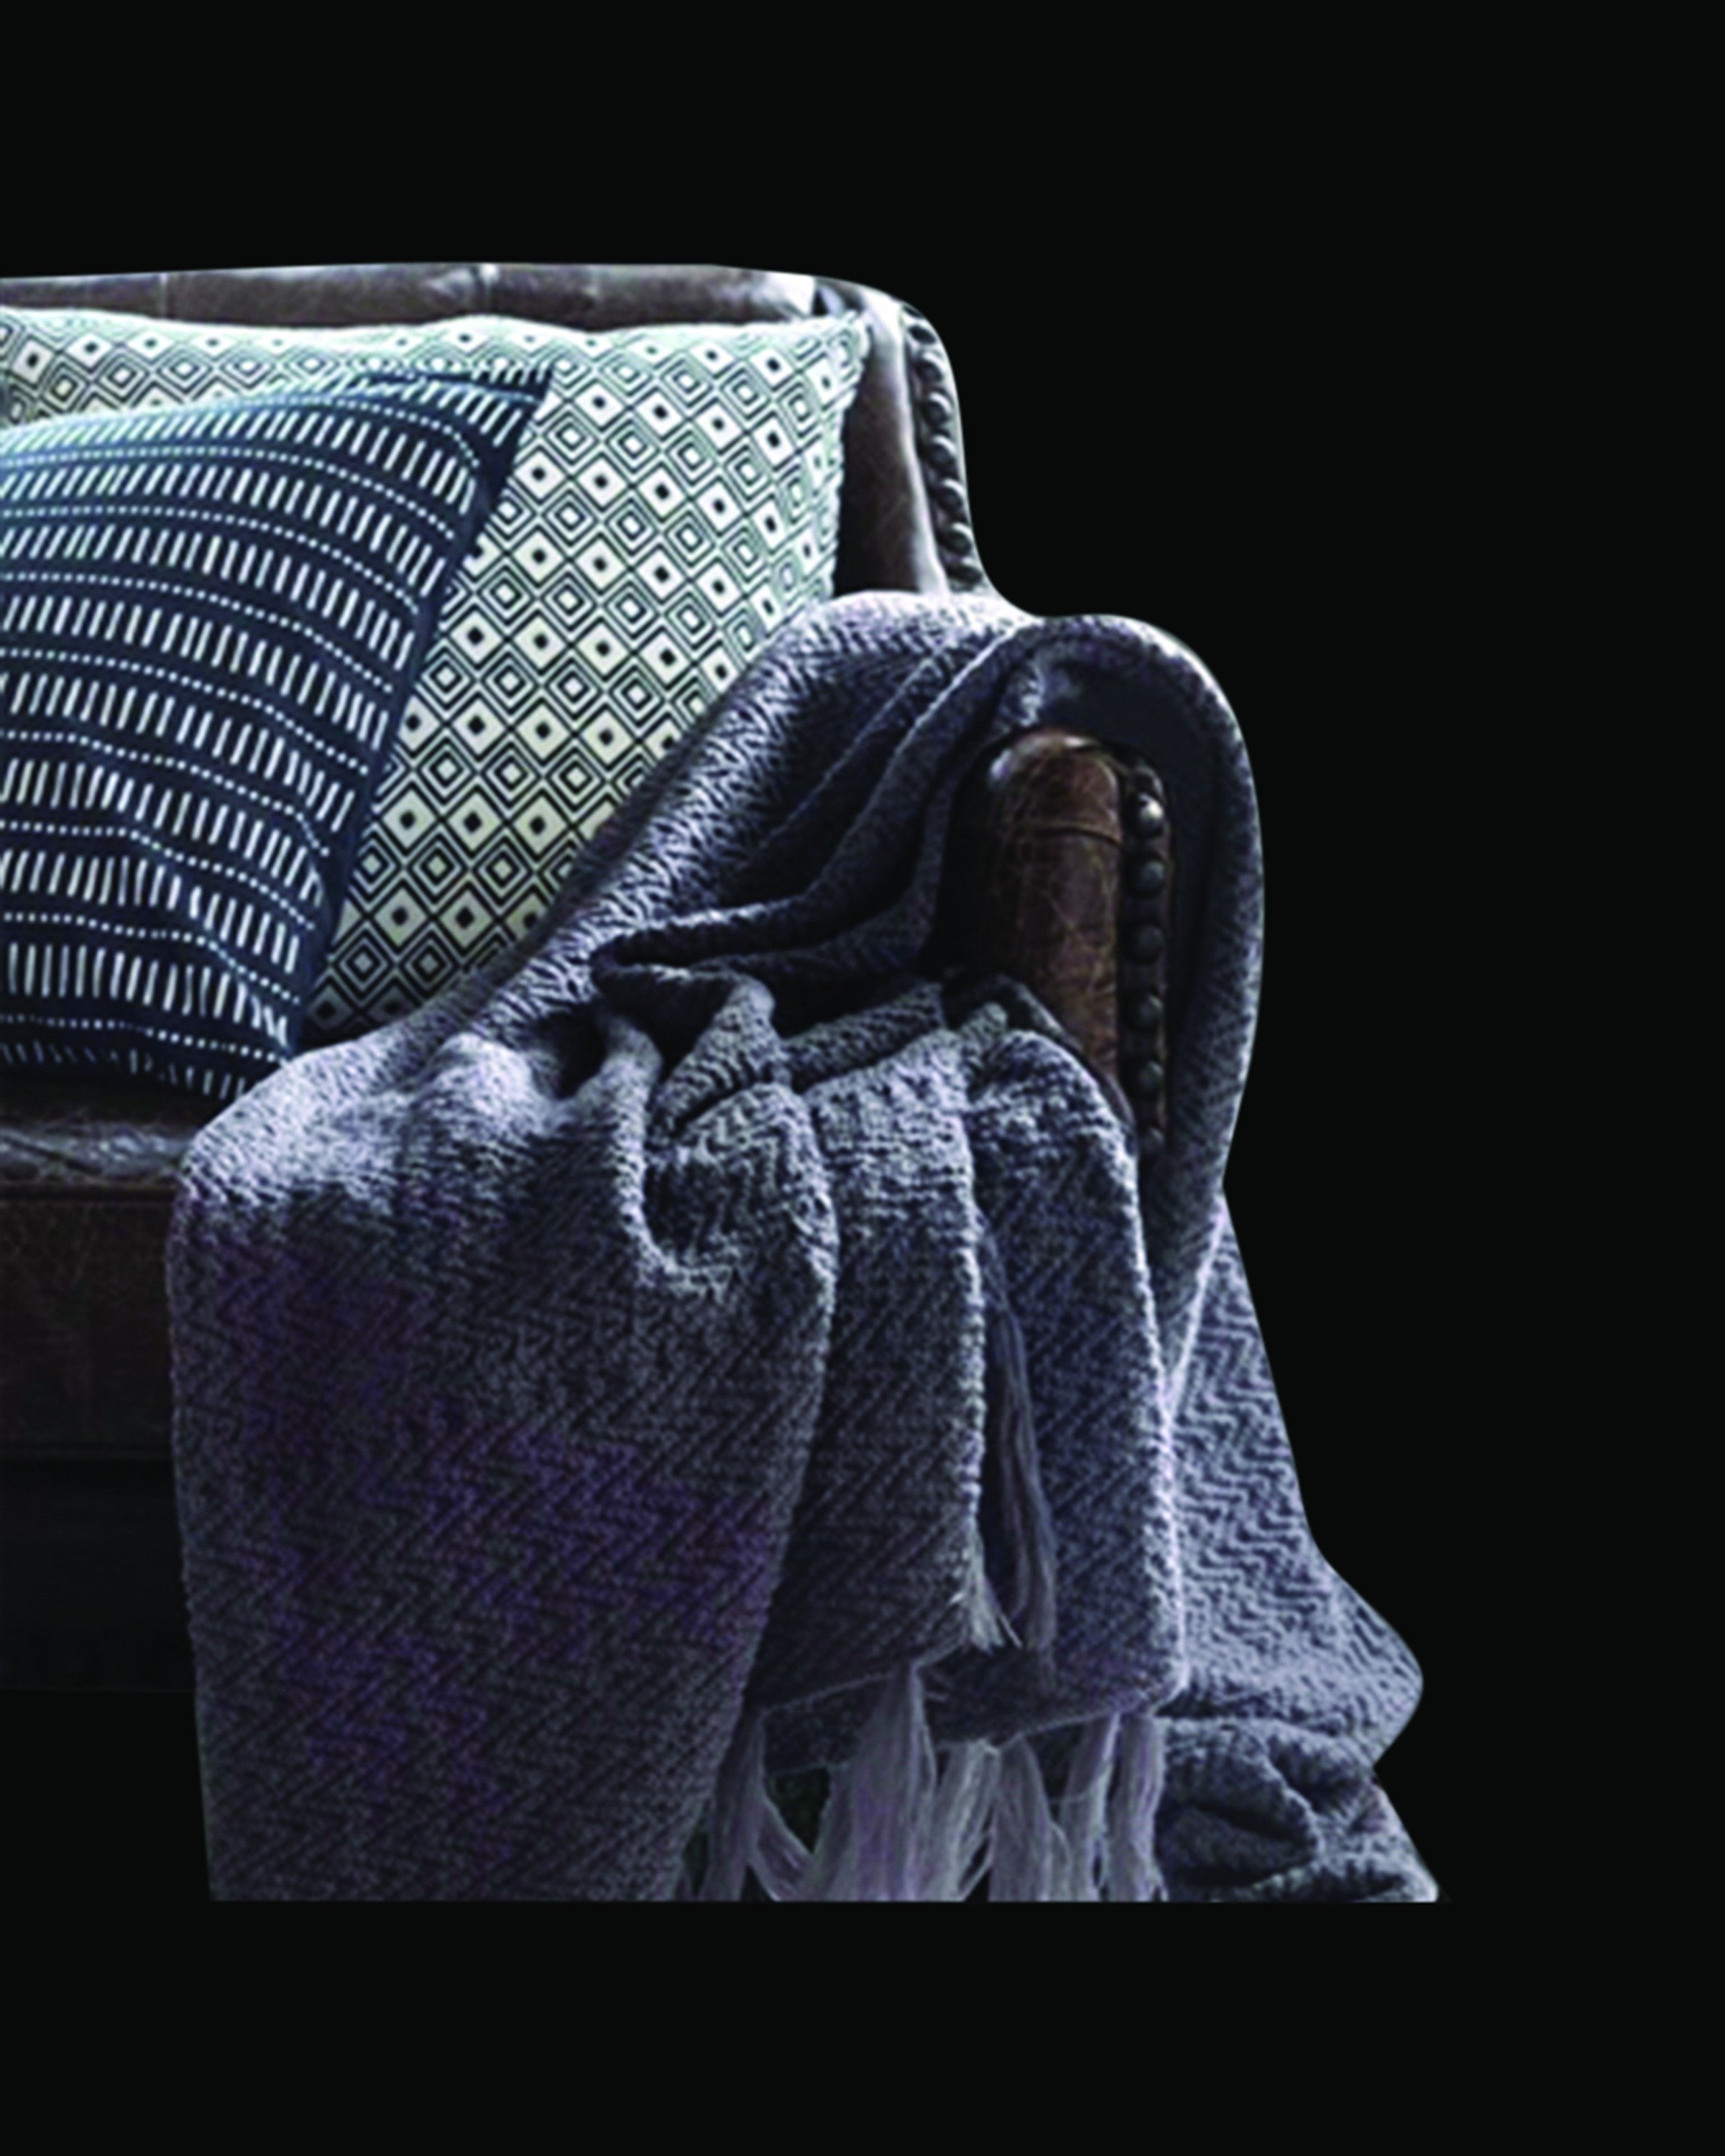 CRANE LUXURY GREY  THROWS AND BLANKETS- ANGIE HOMES ANGIE HOMES